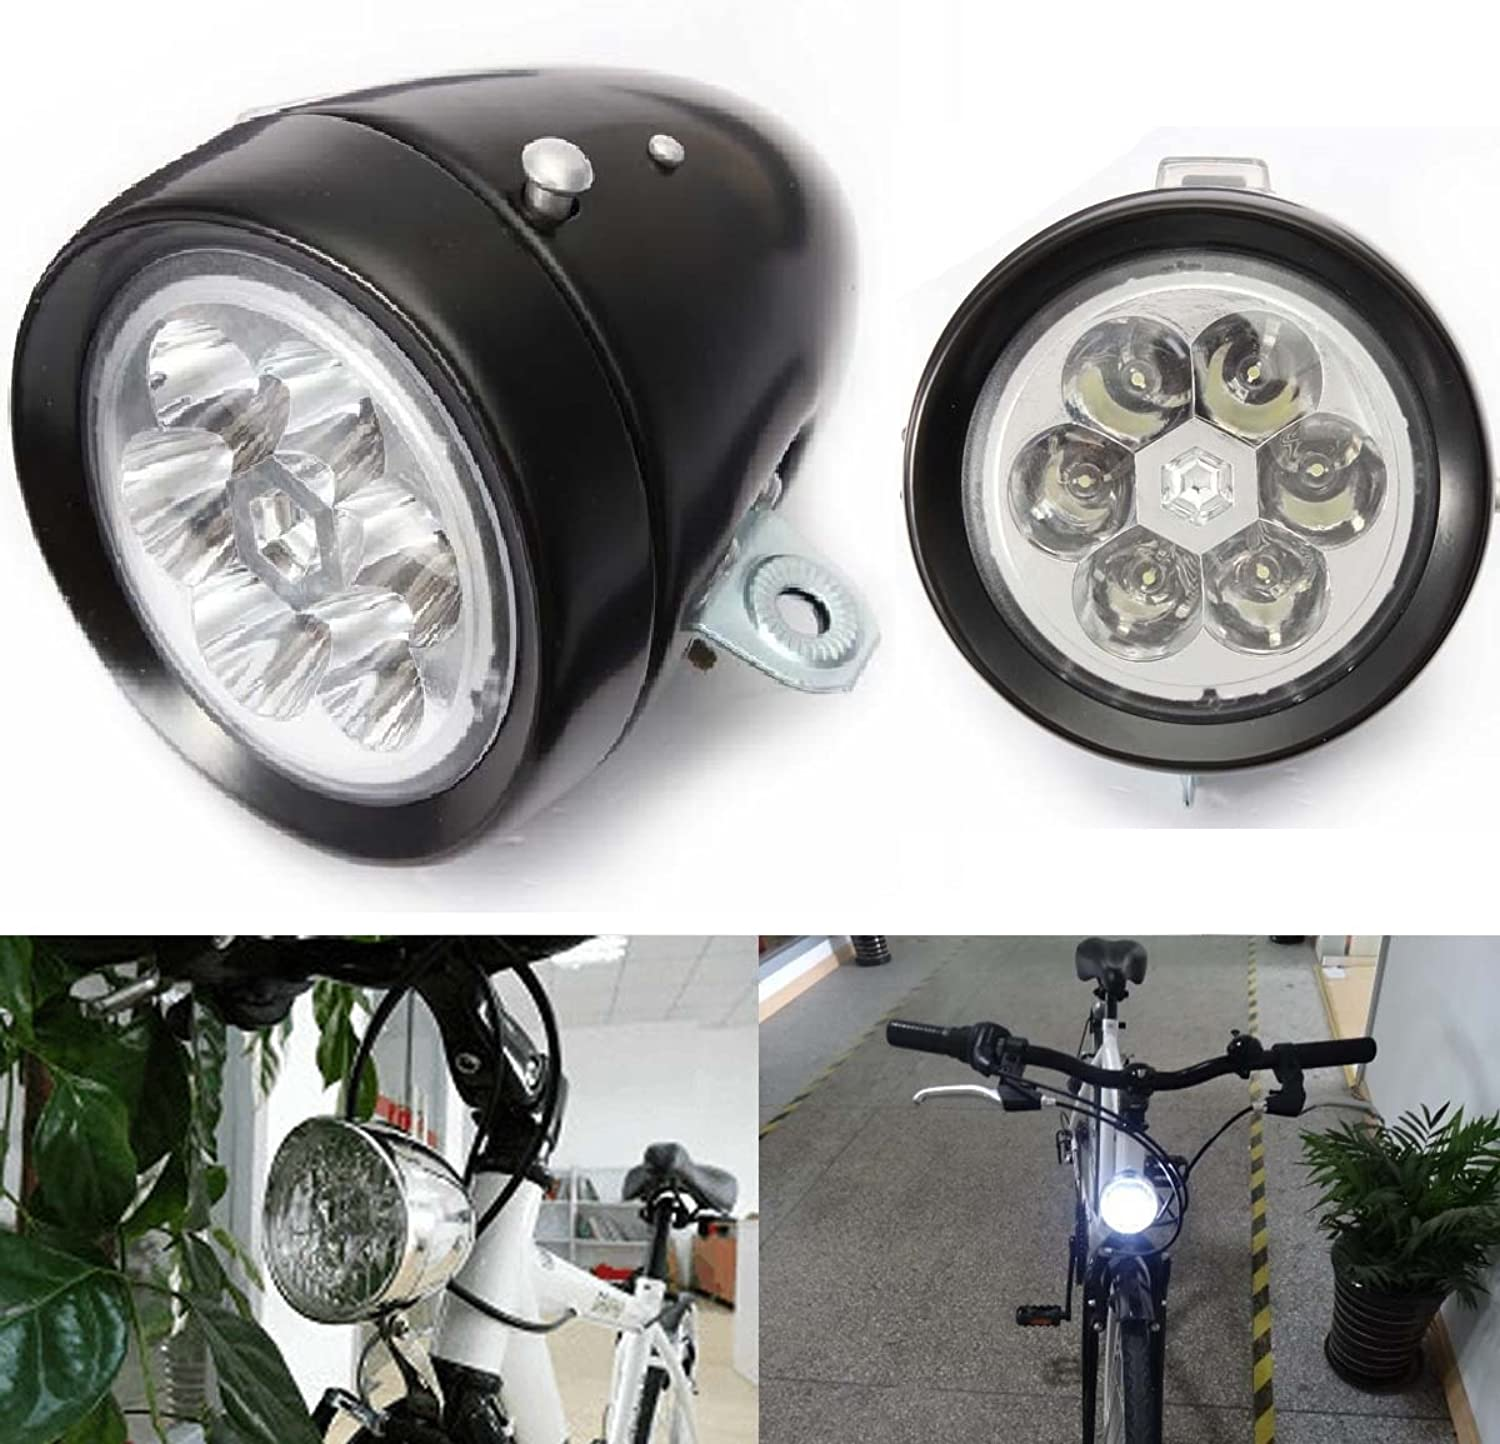 StarArt Vintage Retro Bicycle Bike Front Light Lamp 7 LED Fixie Headlight with Bracket (Black)